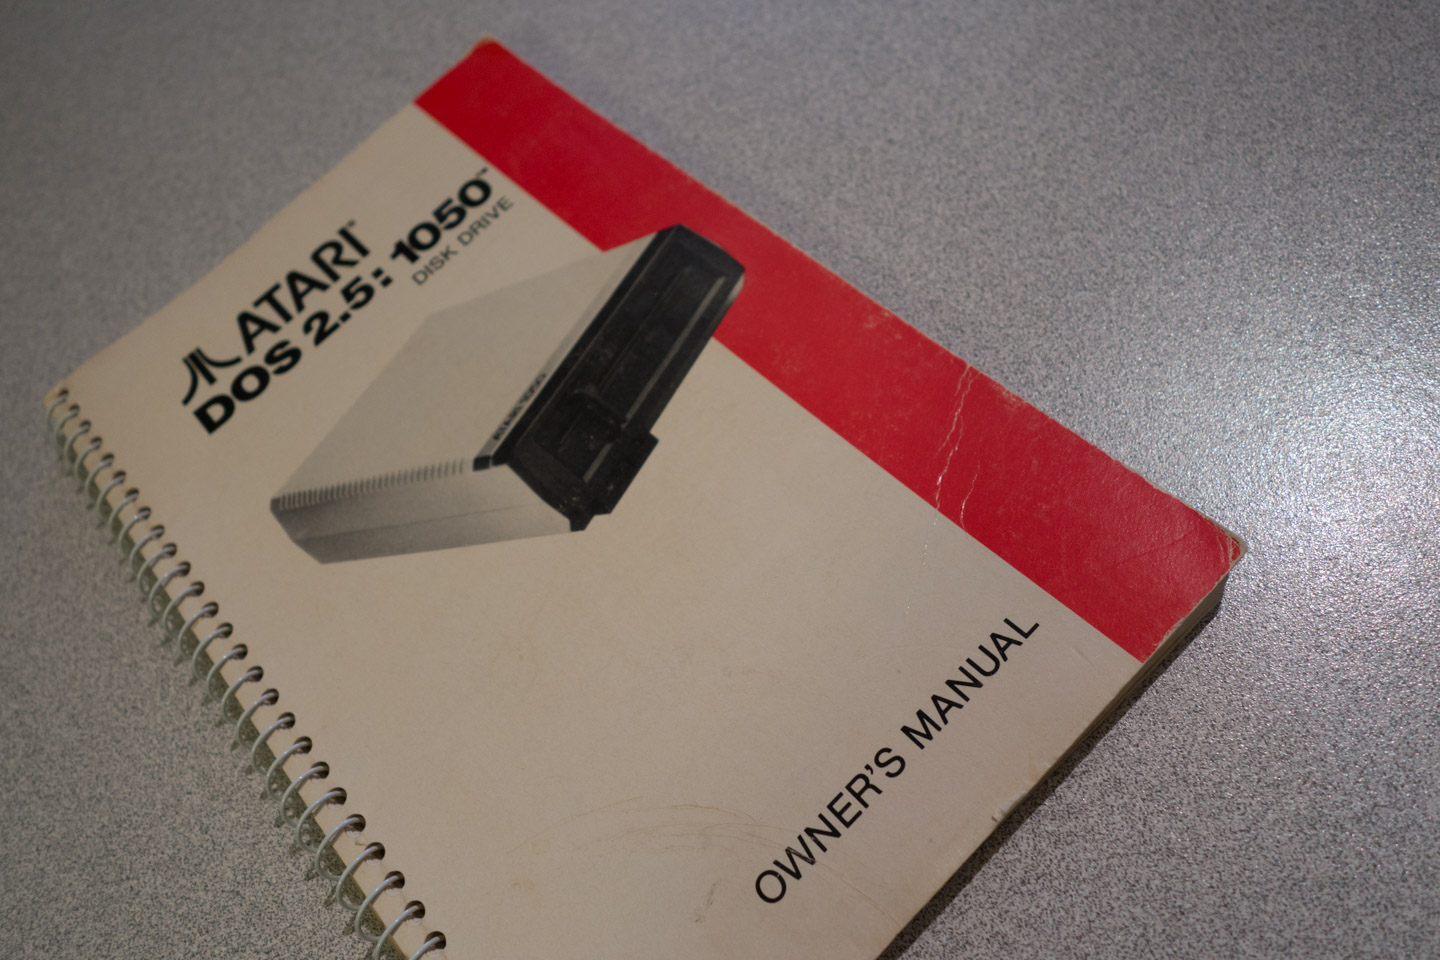 Atari-XE-Game-System-XEGS-DOS-2.5-1050-Disk-Drive-Owners-Manual-01293-19